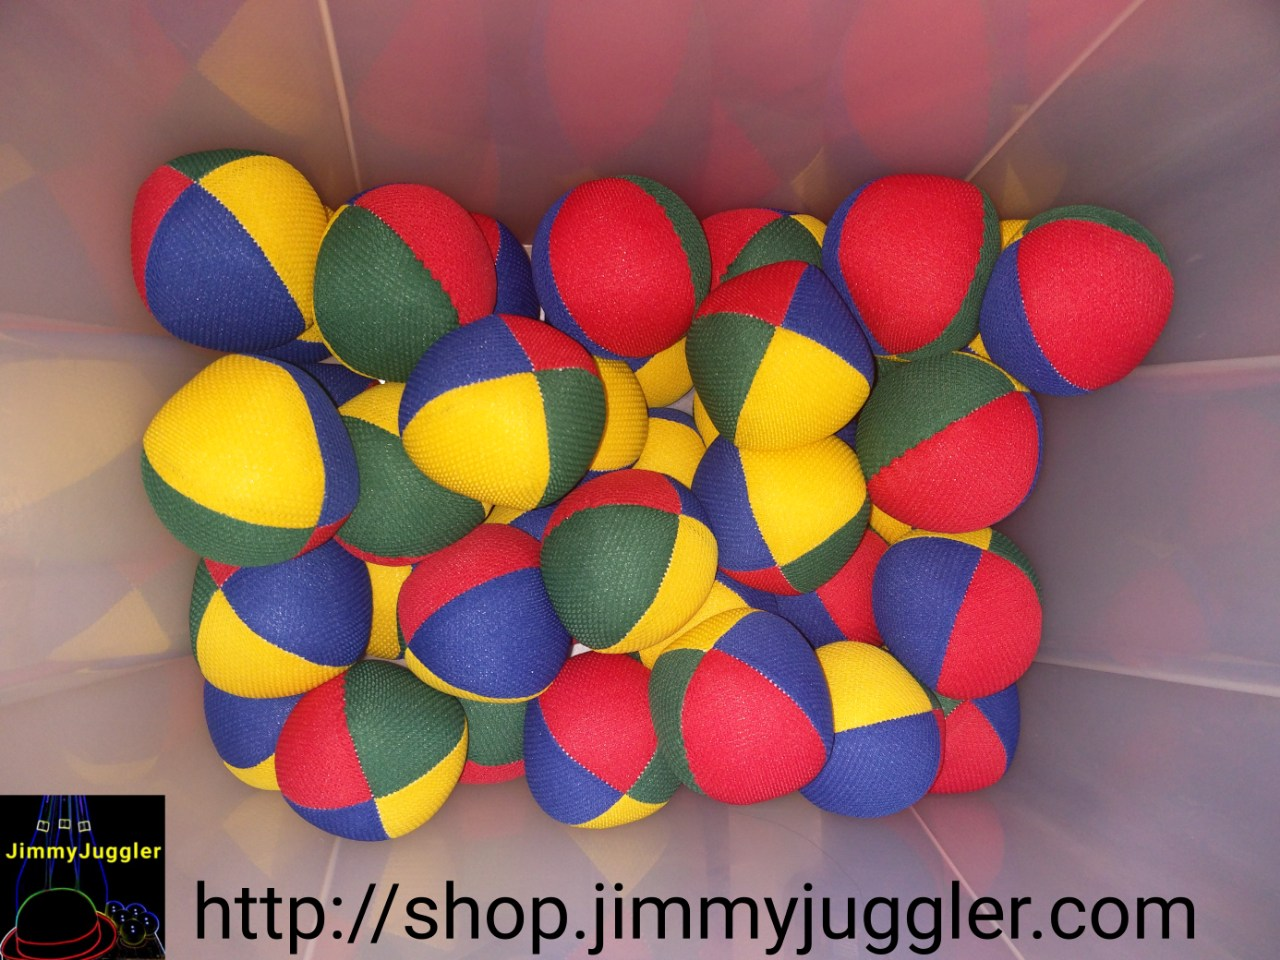 Features of JJ Juggling Beanballs